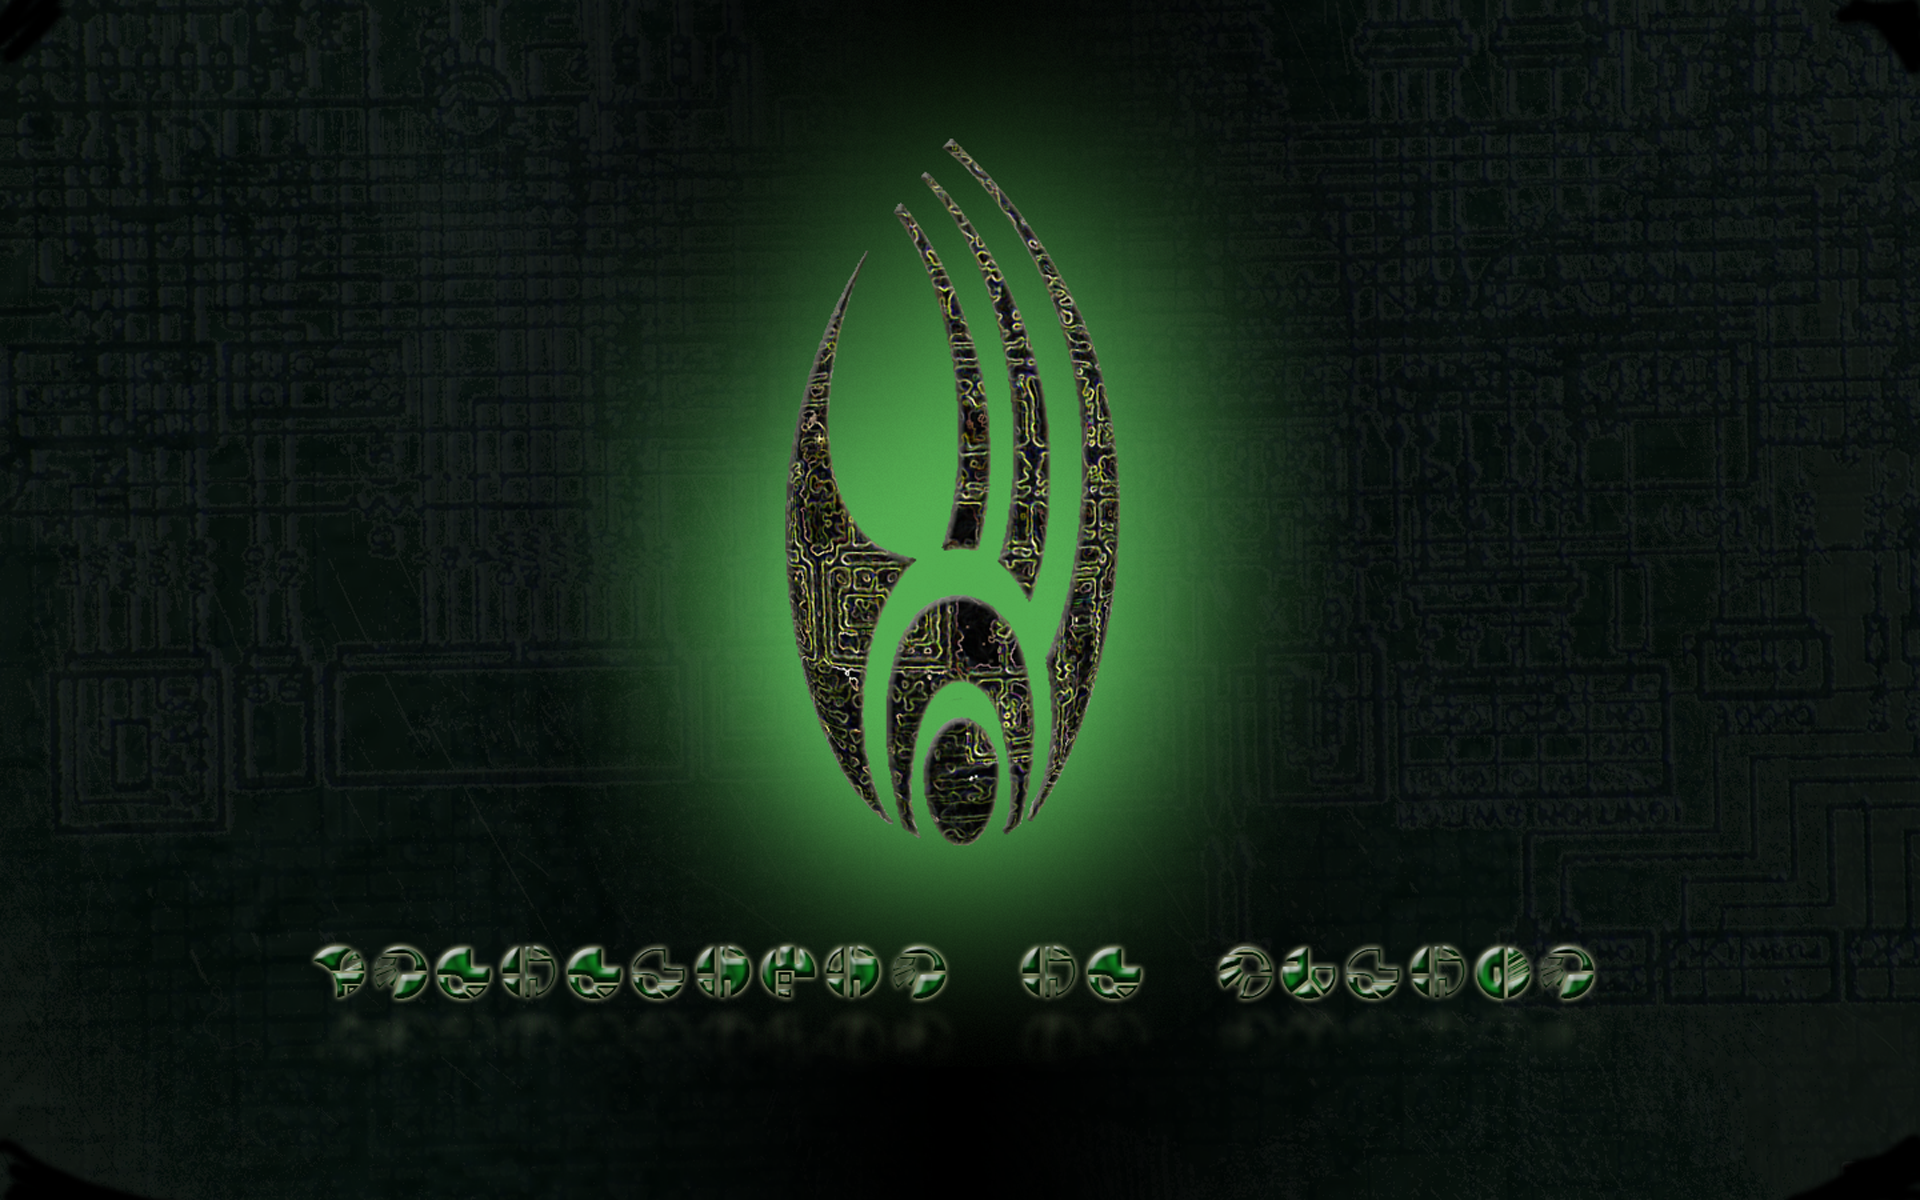 Borg Wallpaper Images